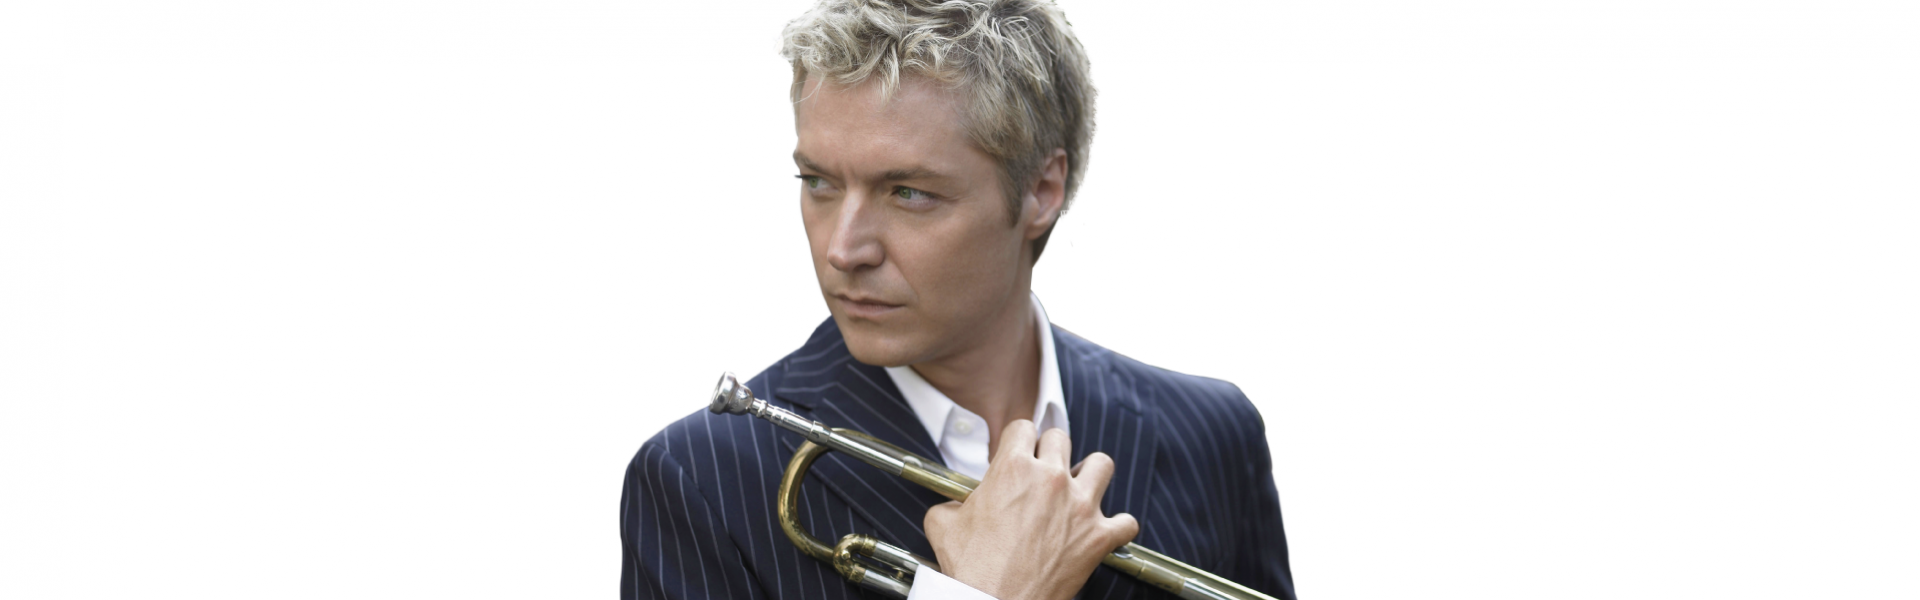 PSM Jazz Festival: An Evening With Chris Botti